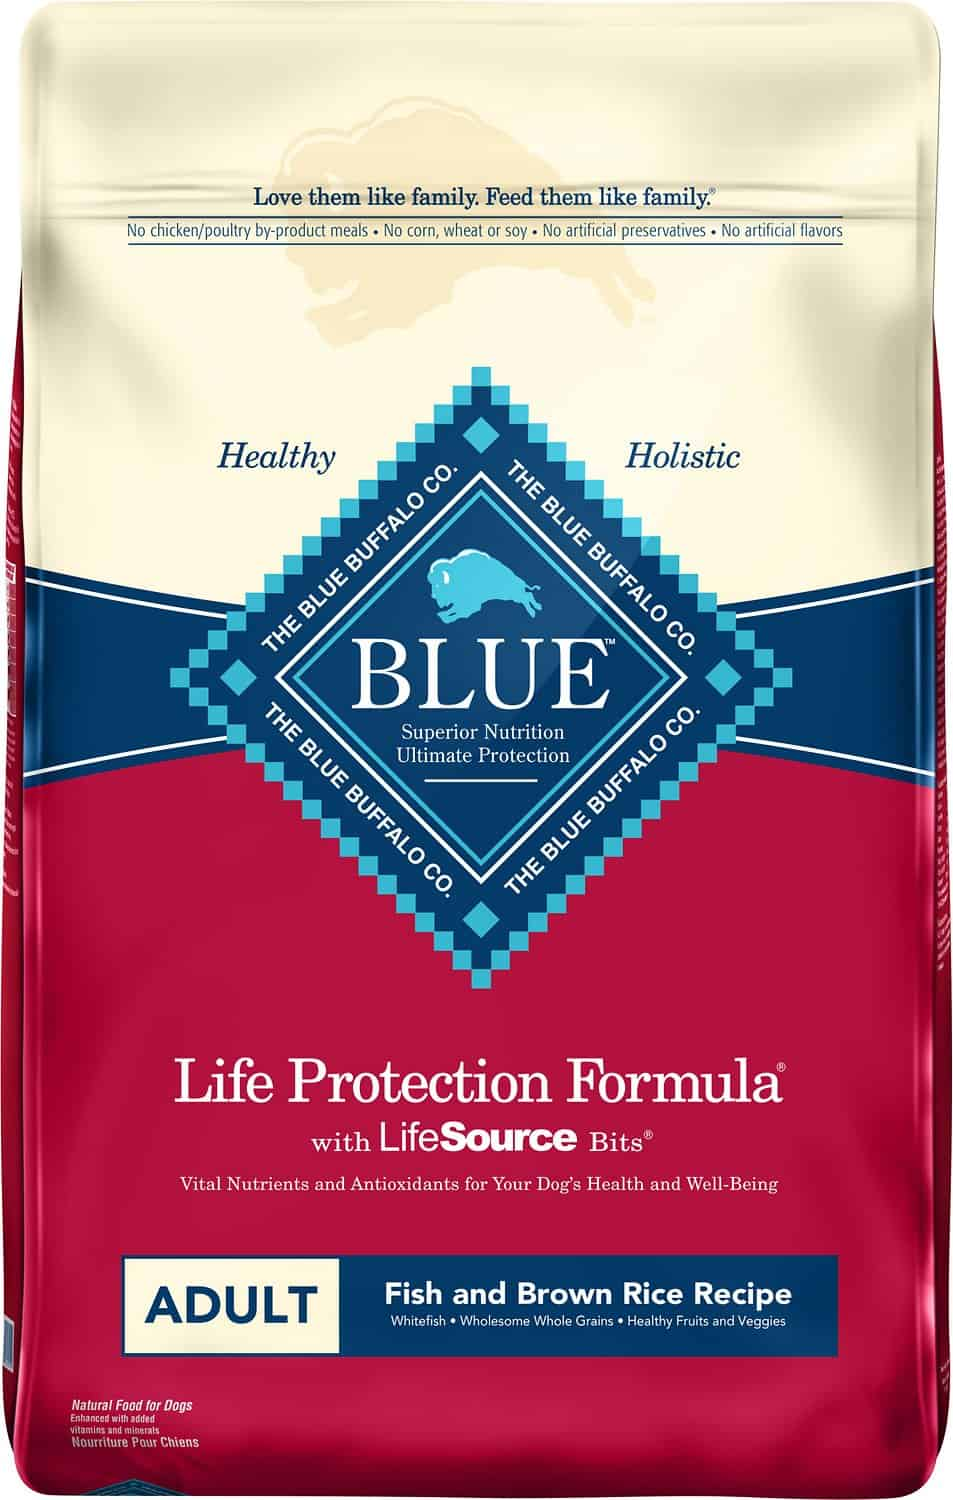 Blue Life Protection Dog Food Review 2021: Best Holistic Dog Food? 15